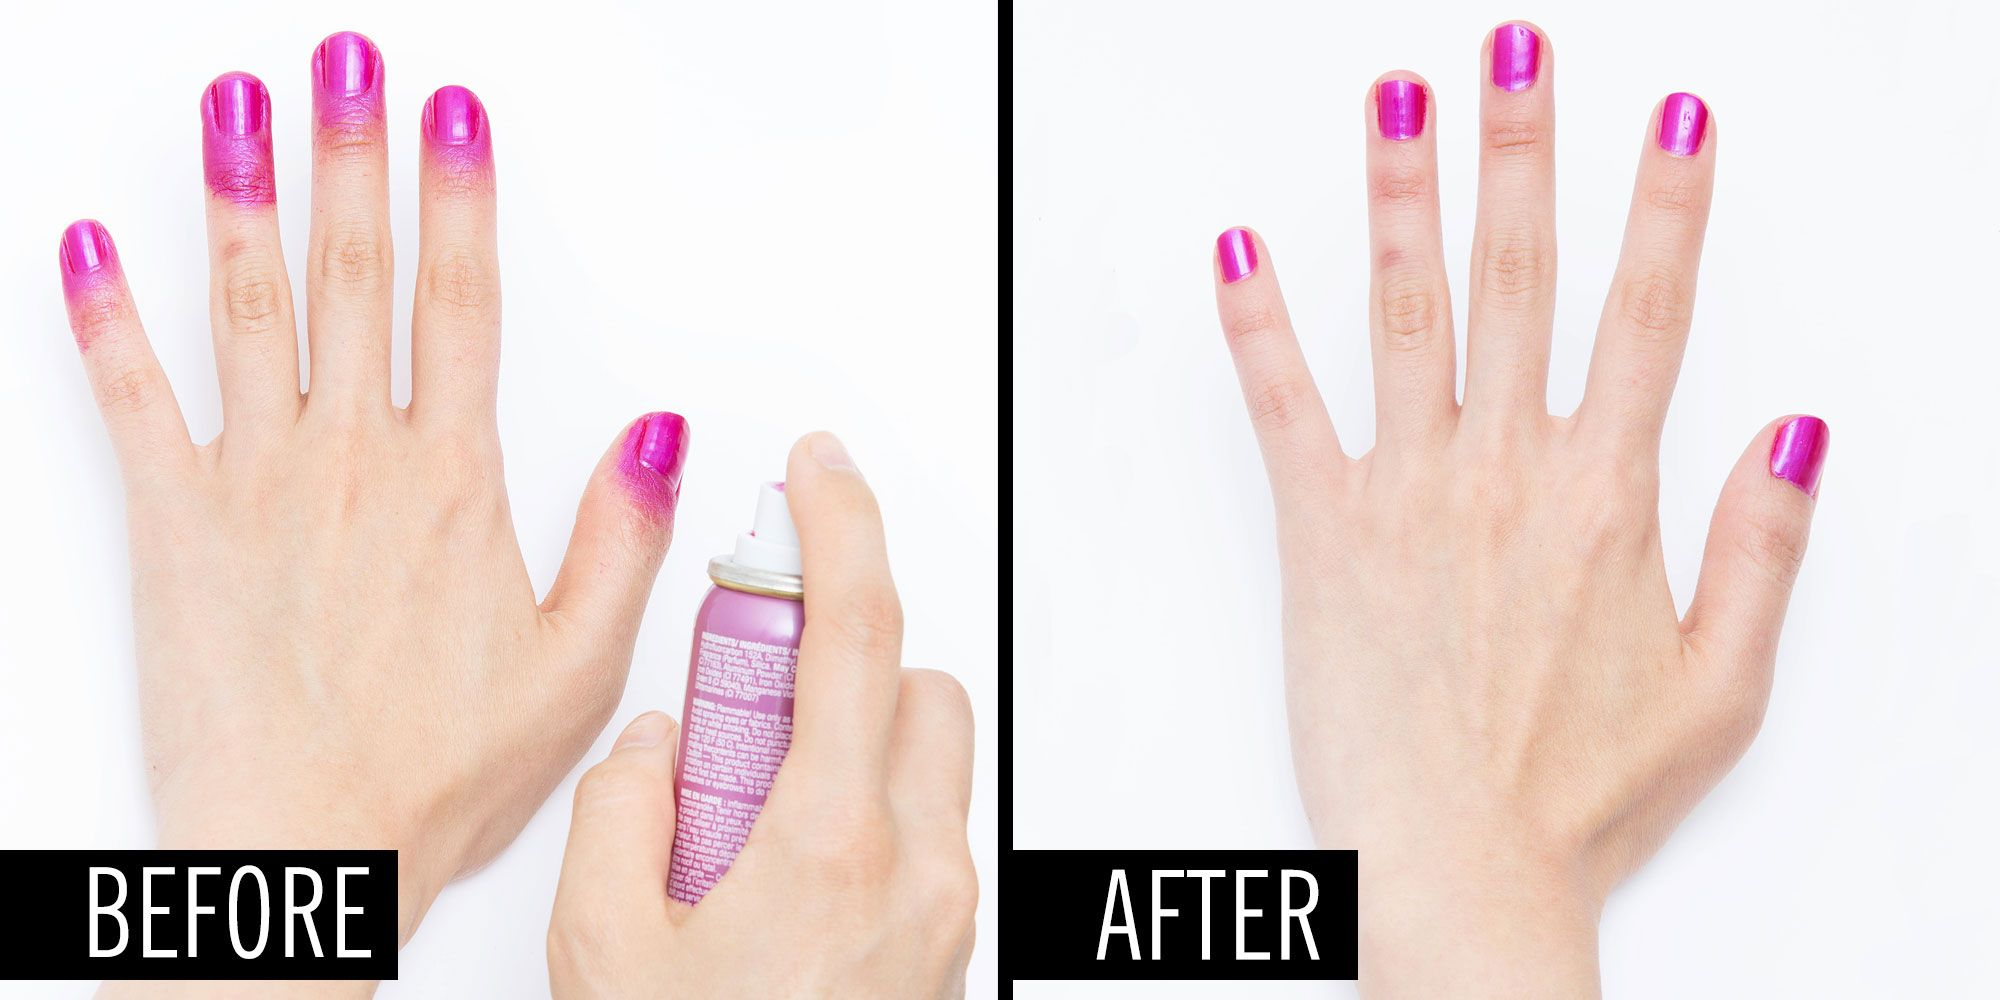 Does it work nails inc paint can spray on nail - Does It Work Nails Inc Paint Can Spray On Nail 56